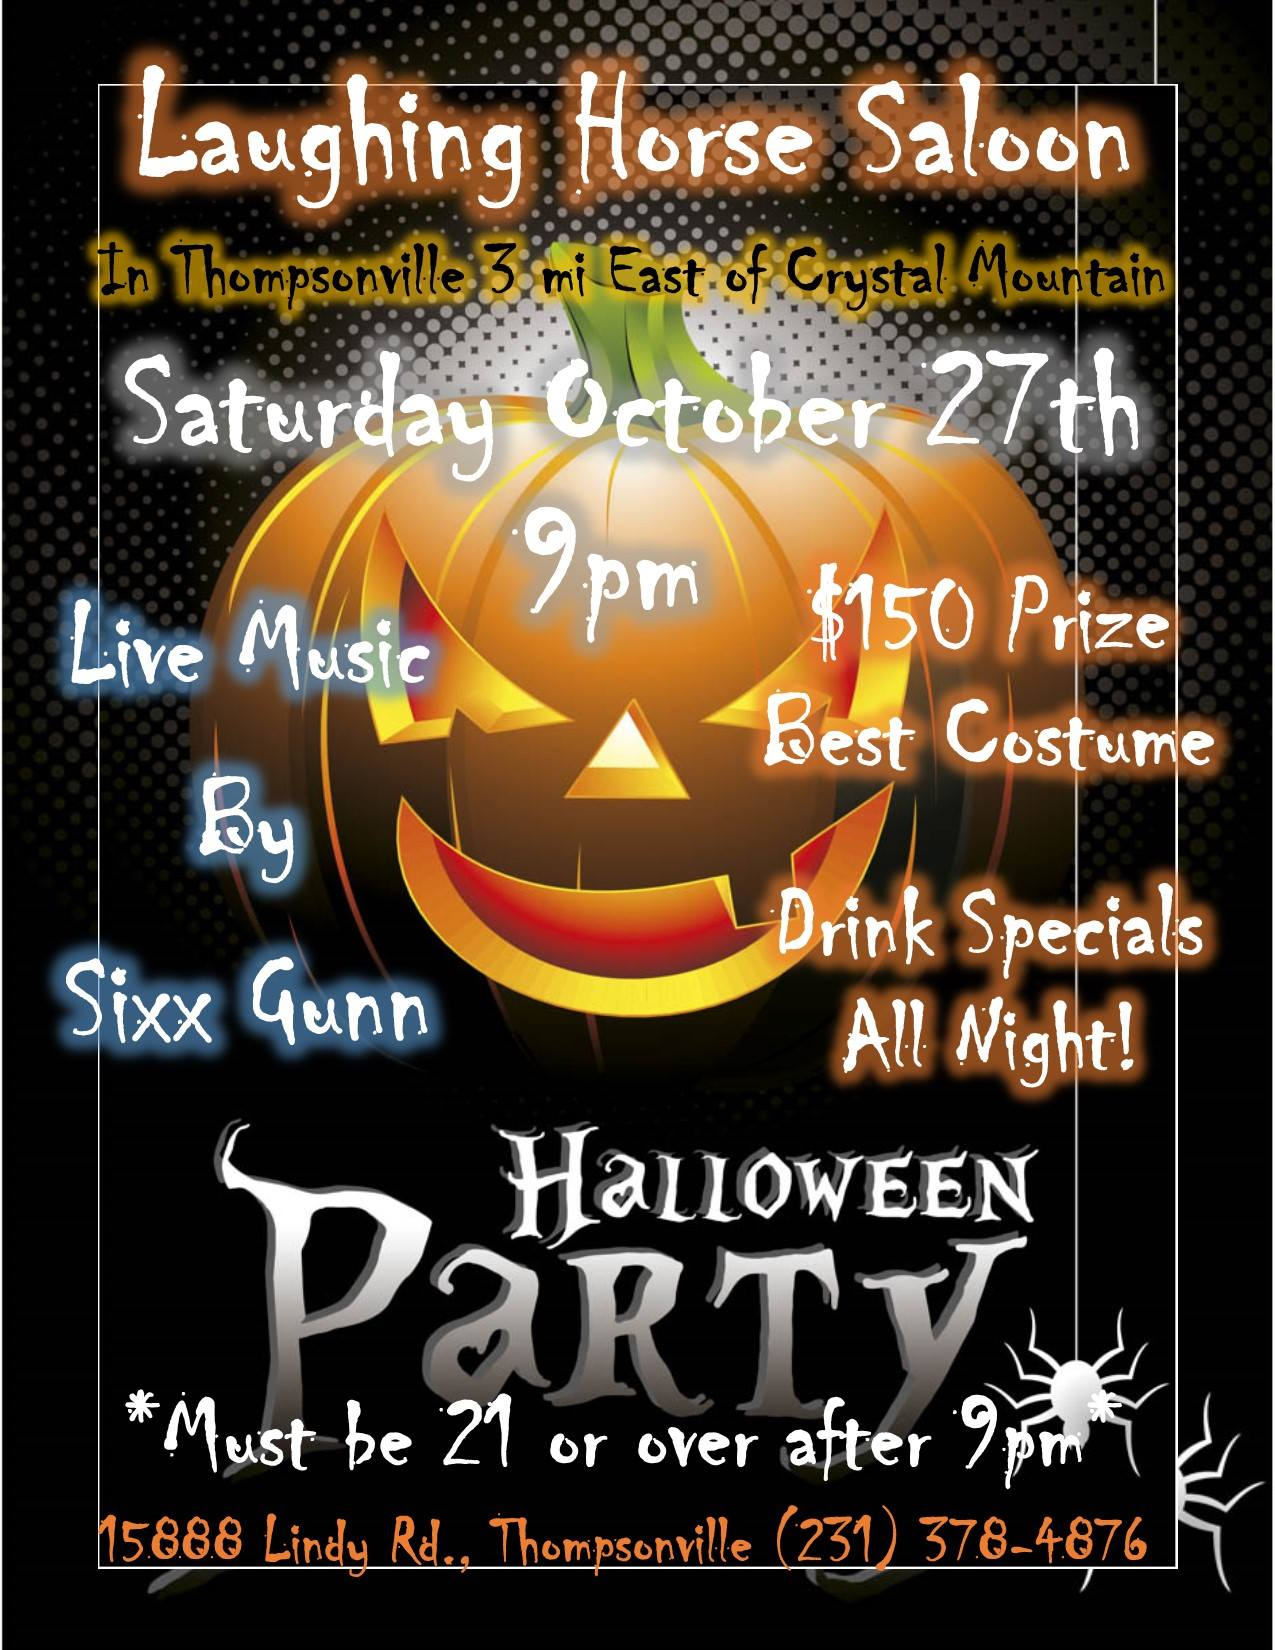 Laughing Horse Saloon Thompsonville Michigan Halloween Party Saturday October 27 2018